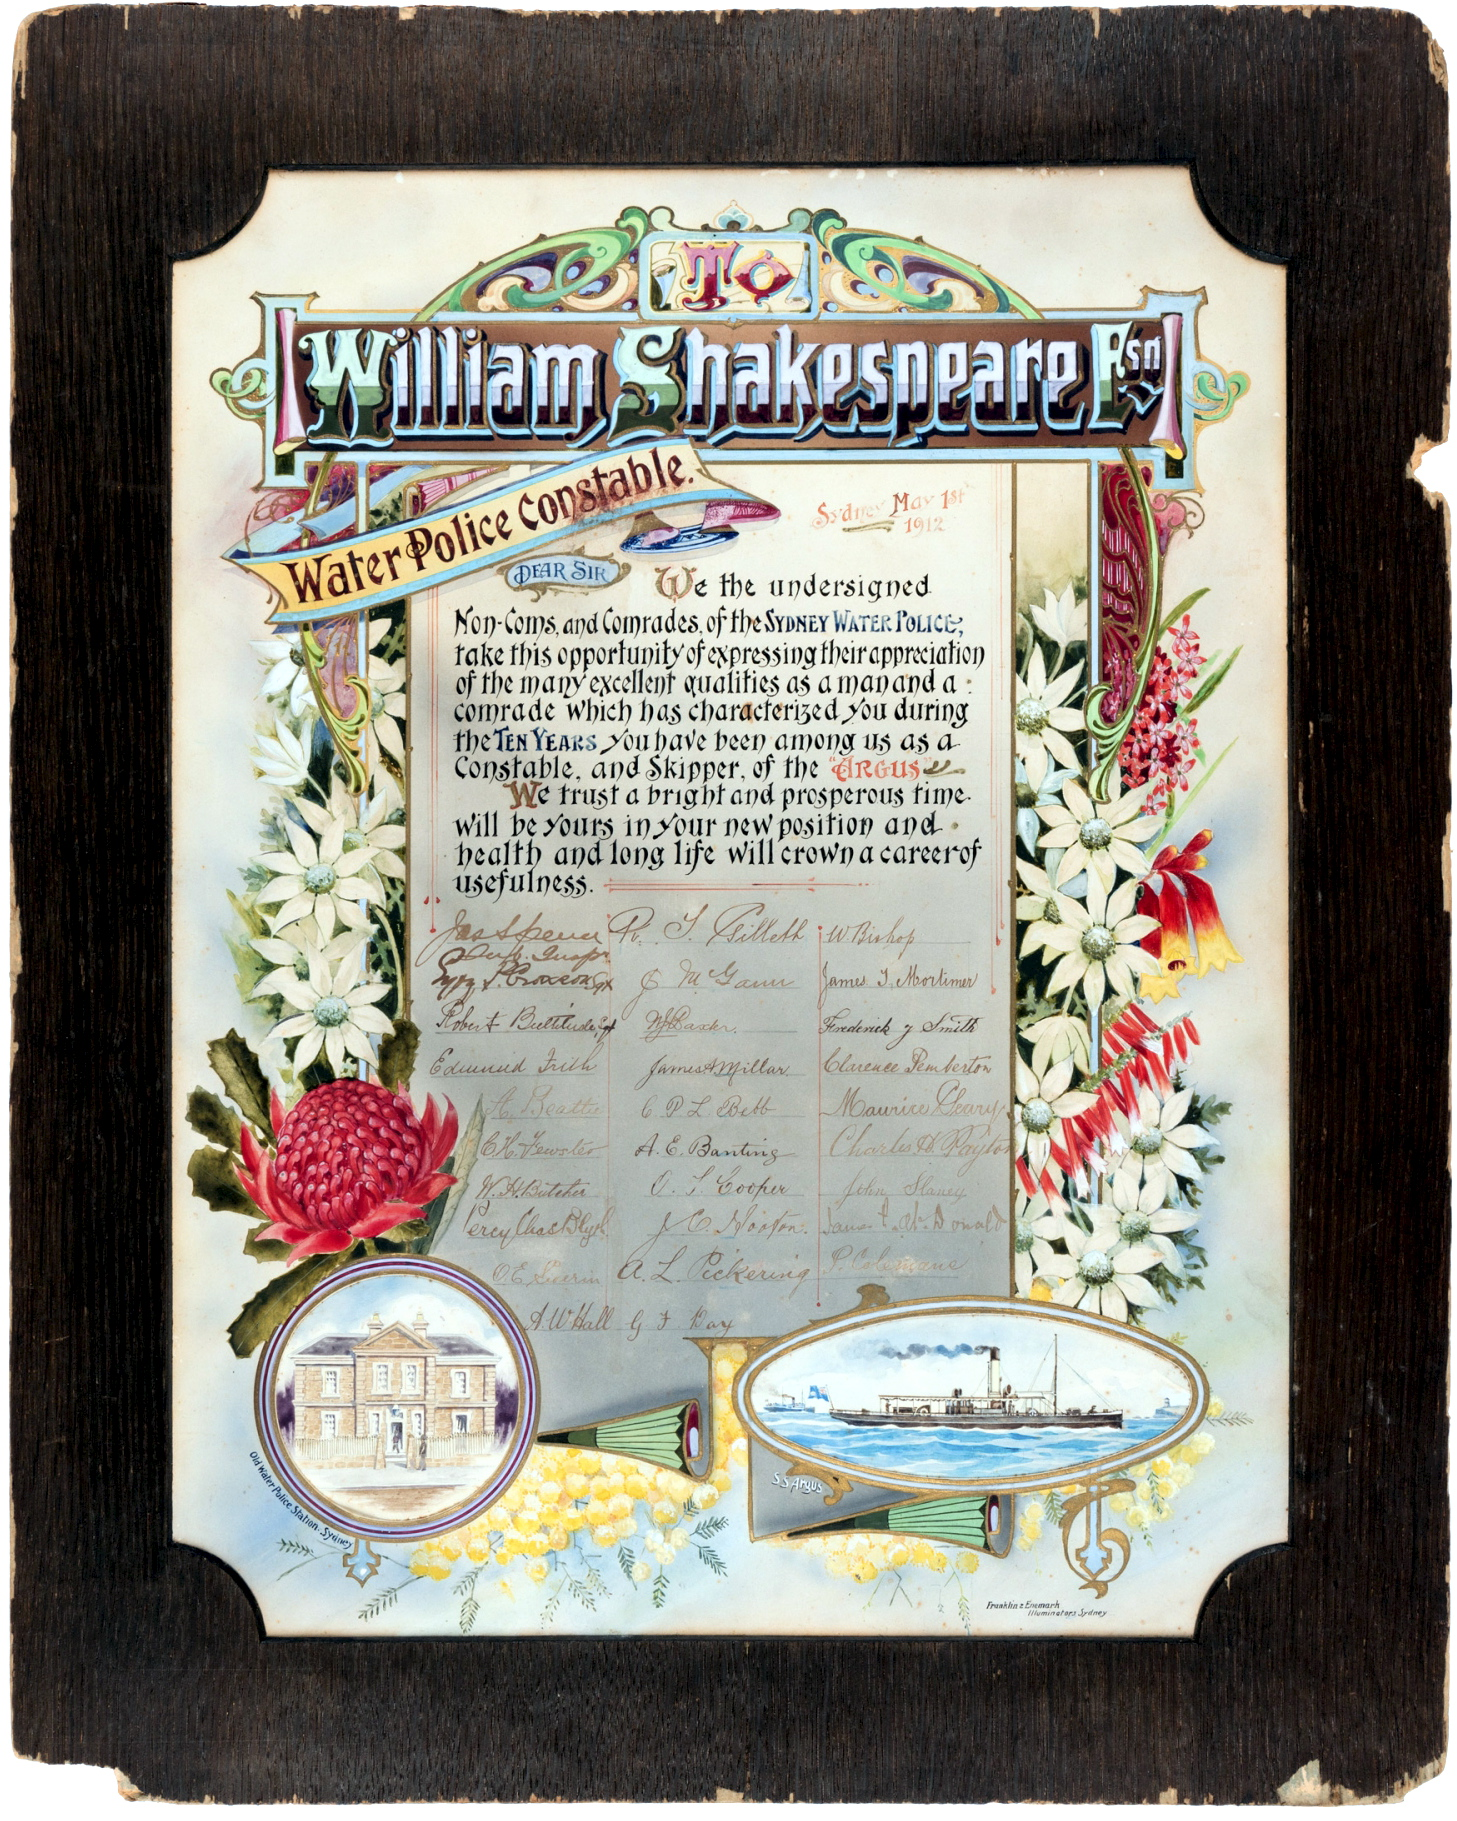 William Shakespeare Water Police Constable Sydney May 1st, 1912 Dear Sir, We the undersigned non-coms, and comrades of the Sydney Water Police, take this opportunity of expressing their appreciation of the many excellent qualities as a man and a comrade which has characterised you during the Ten Years you have been among us as a Constable, and Skipper, of the Argus. We trust a bright and prosperous time will be yours in your new position and health and long life will crown a career of usefulness. Signed: by 29 people.